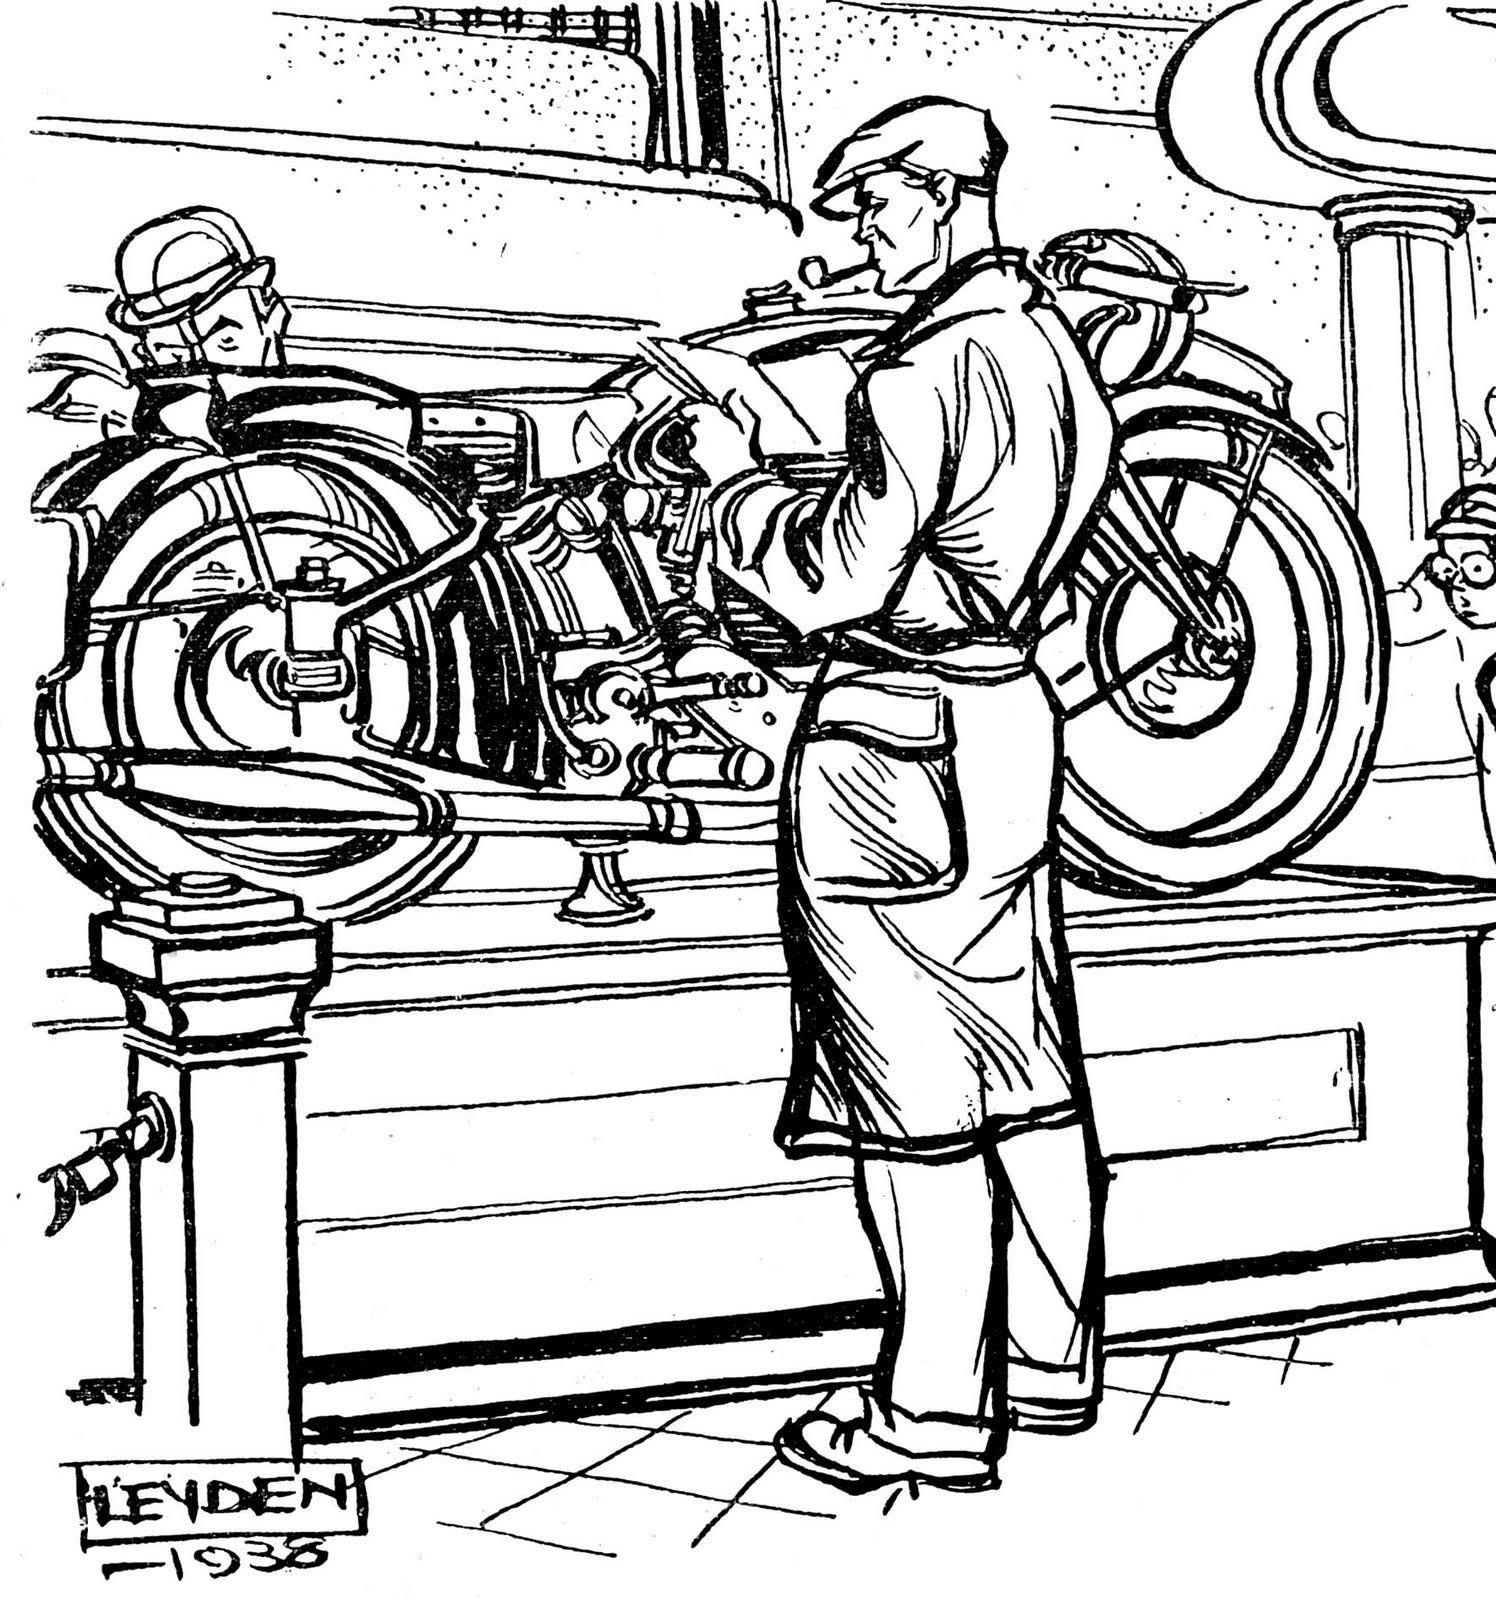 the velobanjogent  pen and ink drawings  from  u0026quot motorcycle